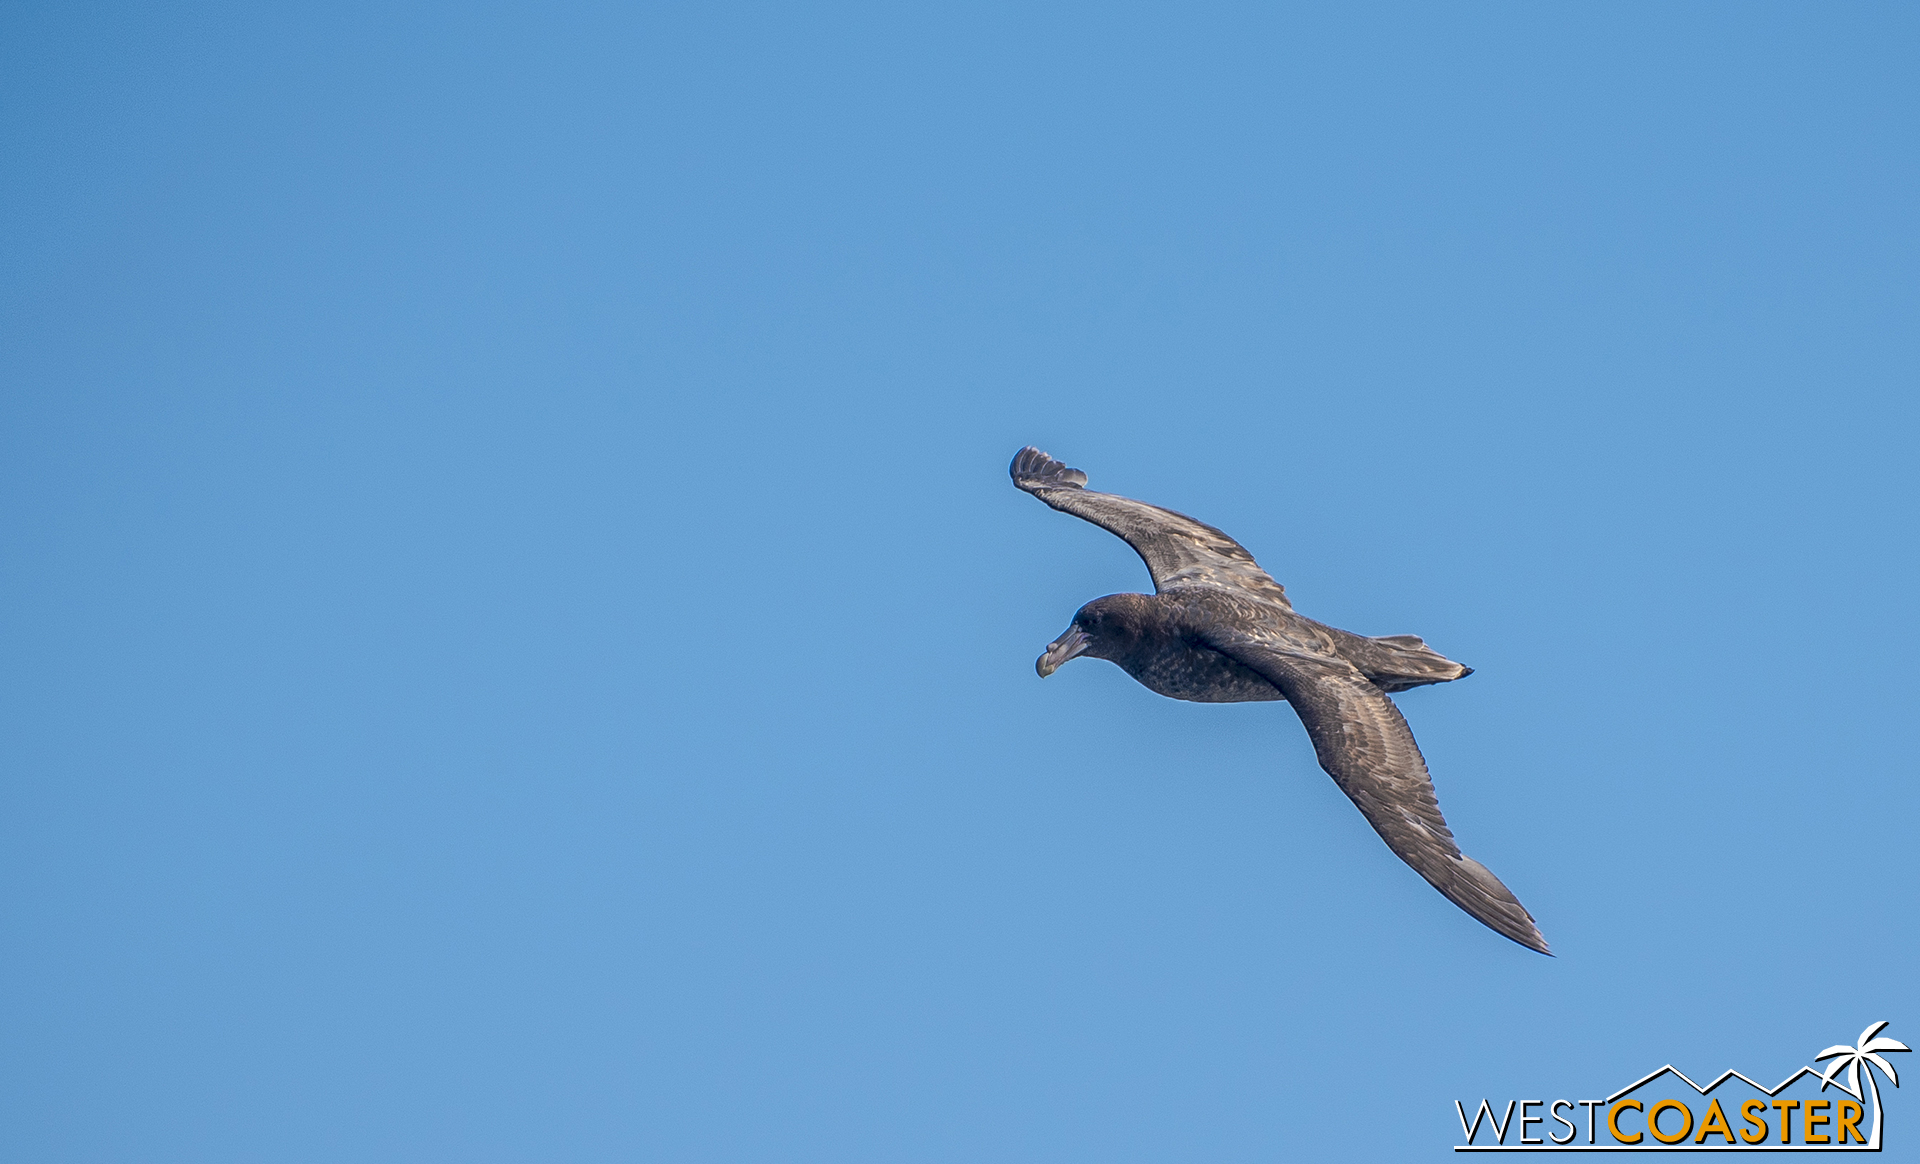 A Petrel takes flight next to our boat.